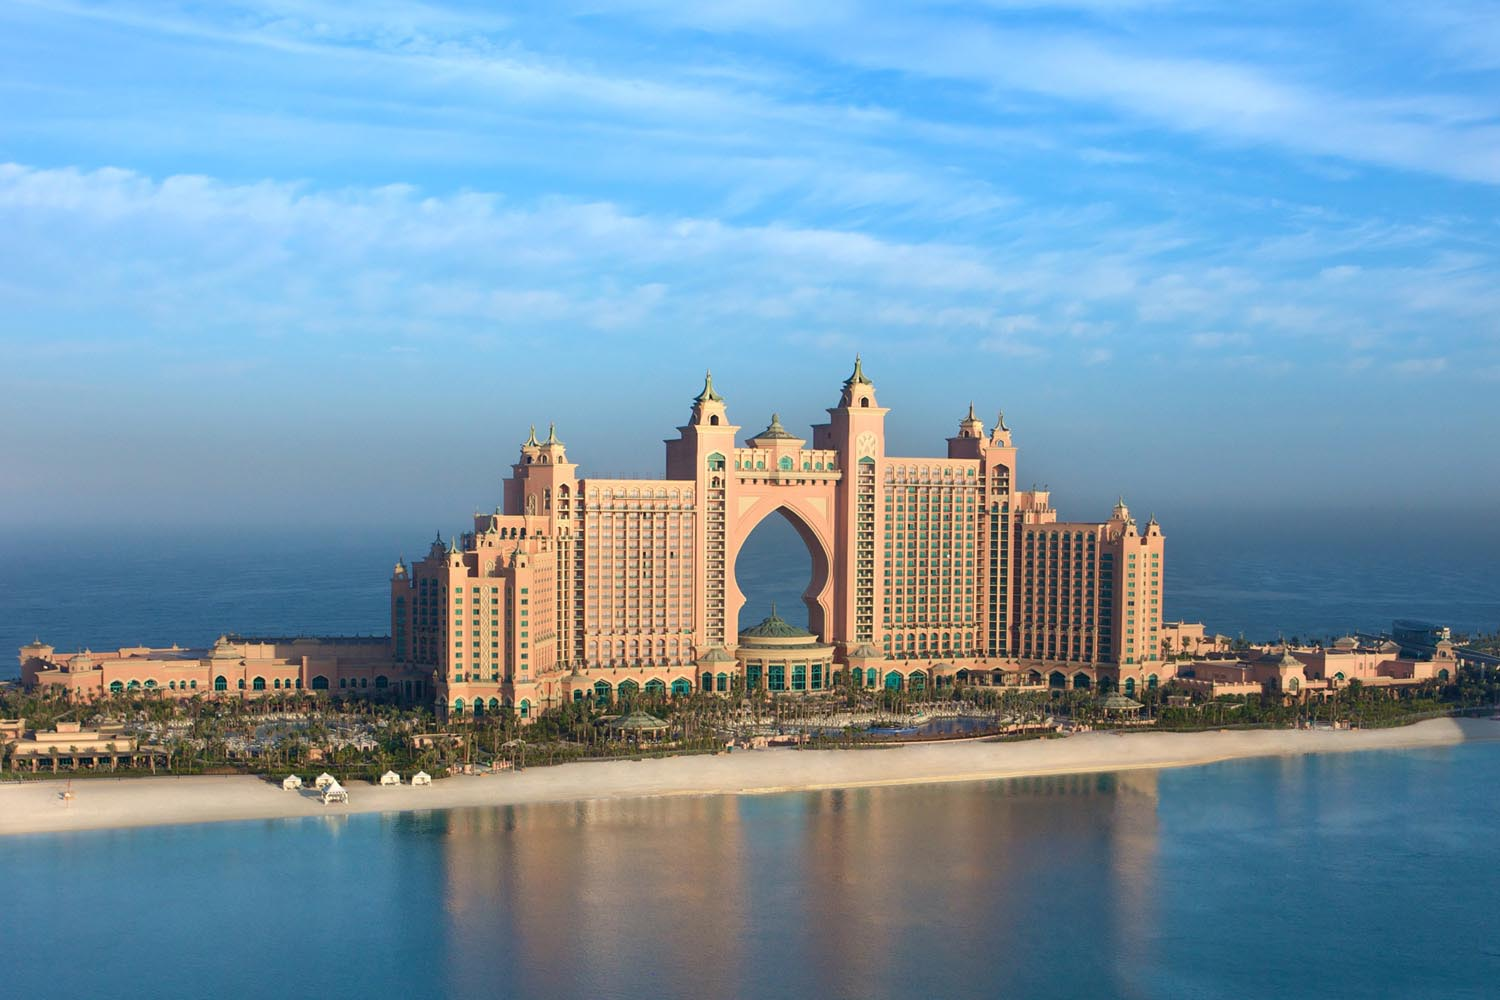 Contest spin to win a 5 night stay for 8 people at for Where to stay in dubai